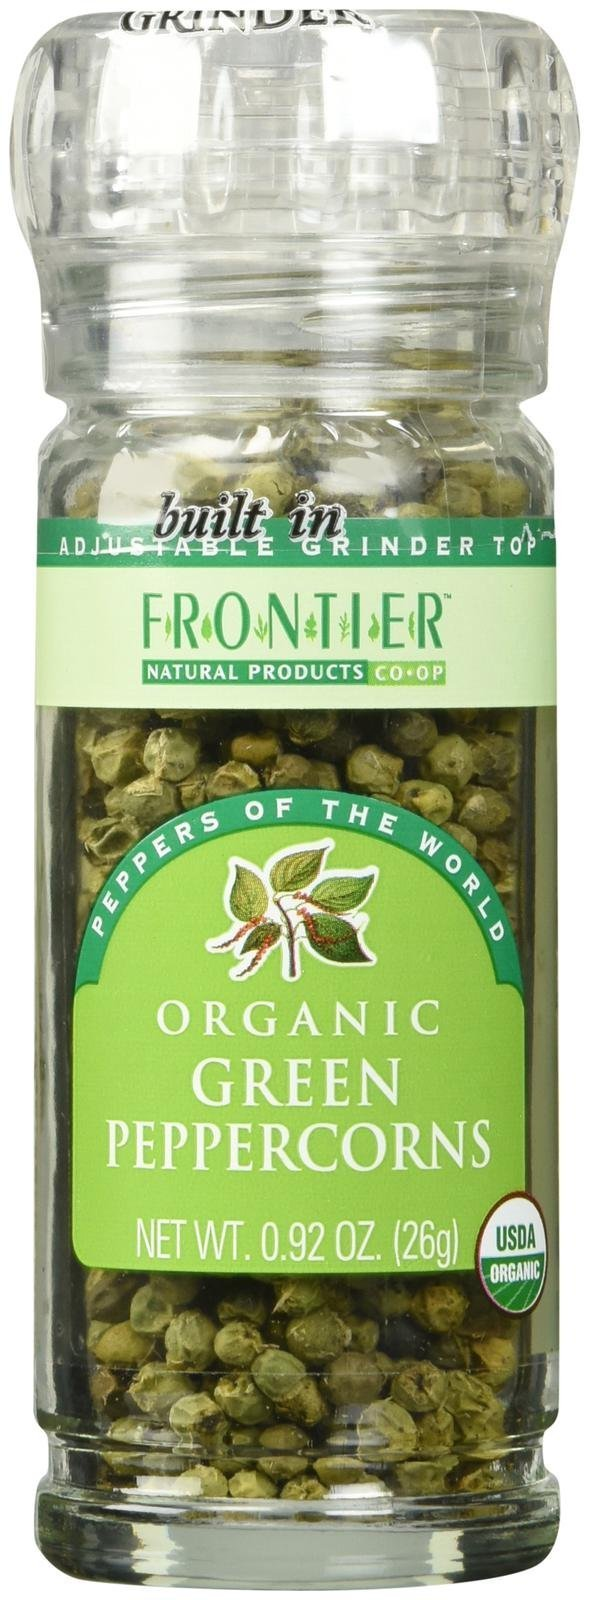 Frontier Organic Peppercorn Spice - Green - 0.92 Ounces